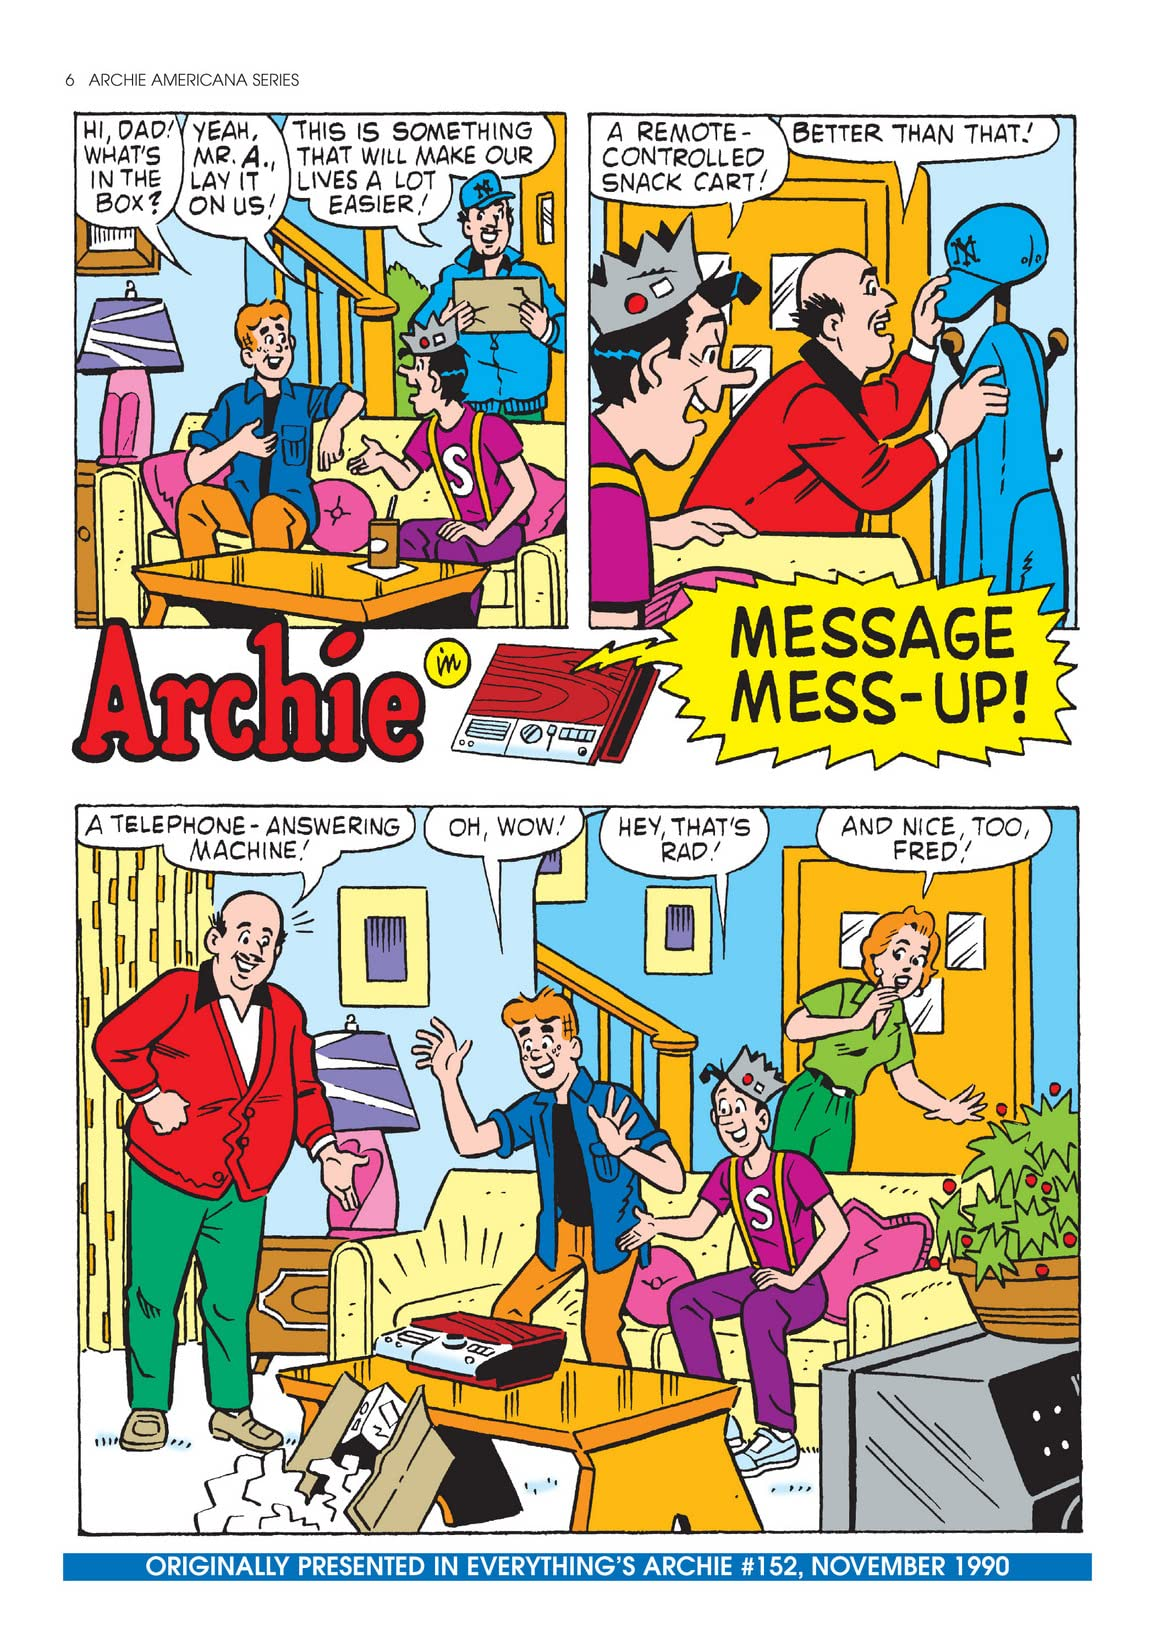 Archie Americana Series: Best of the Nineties